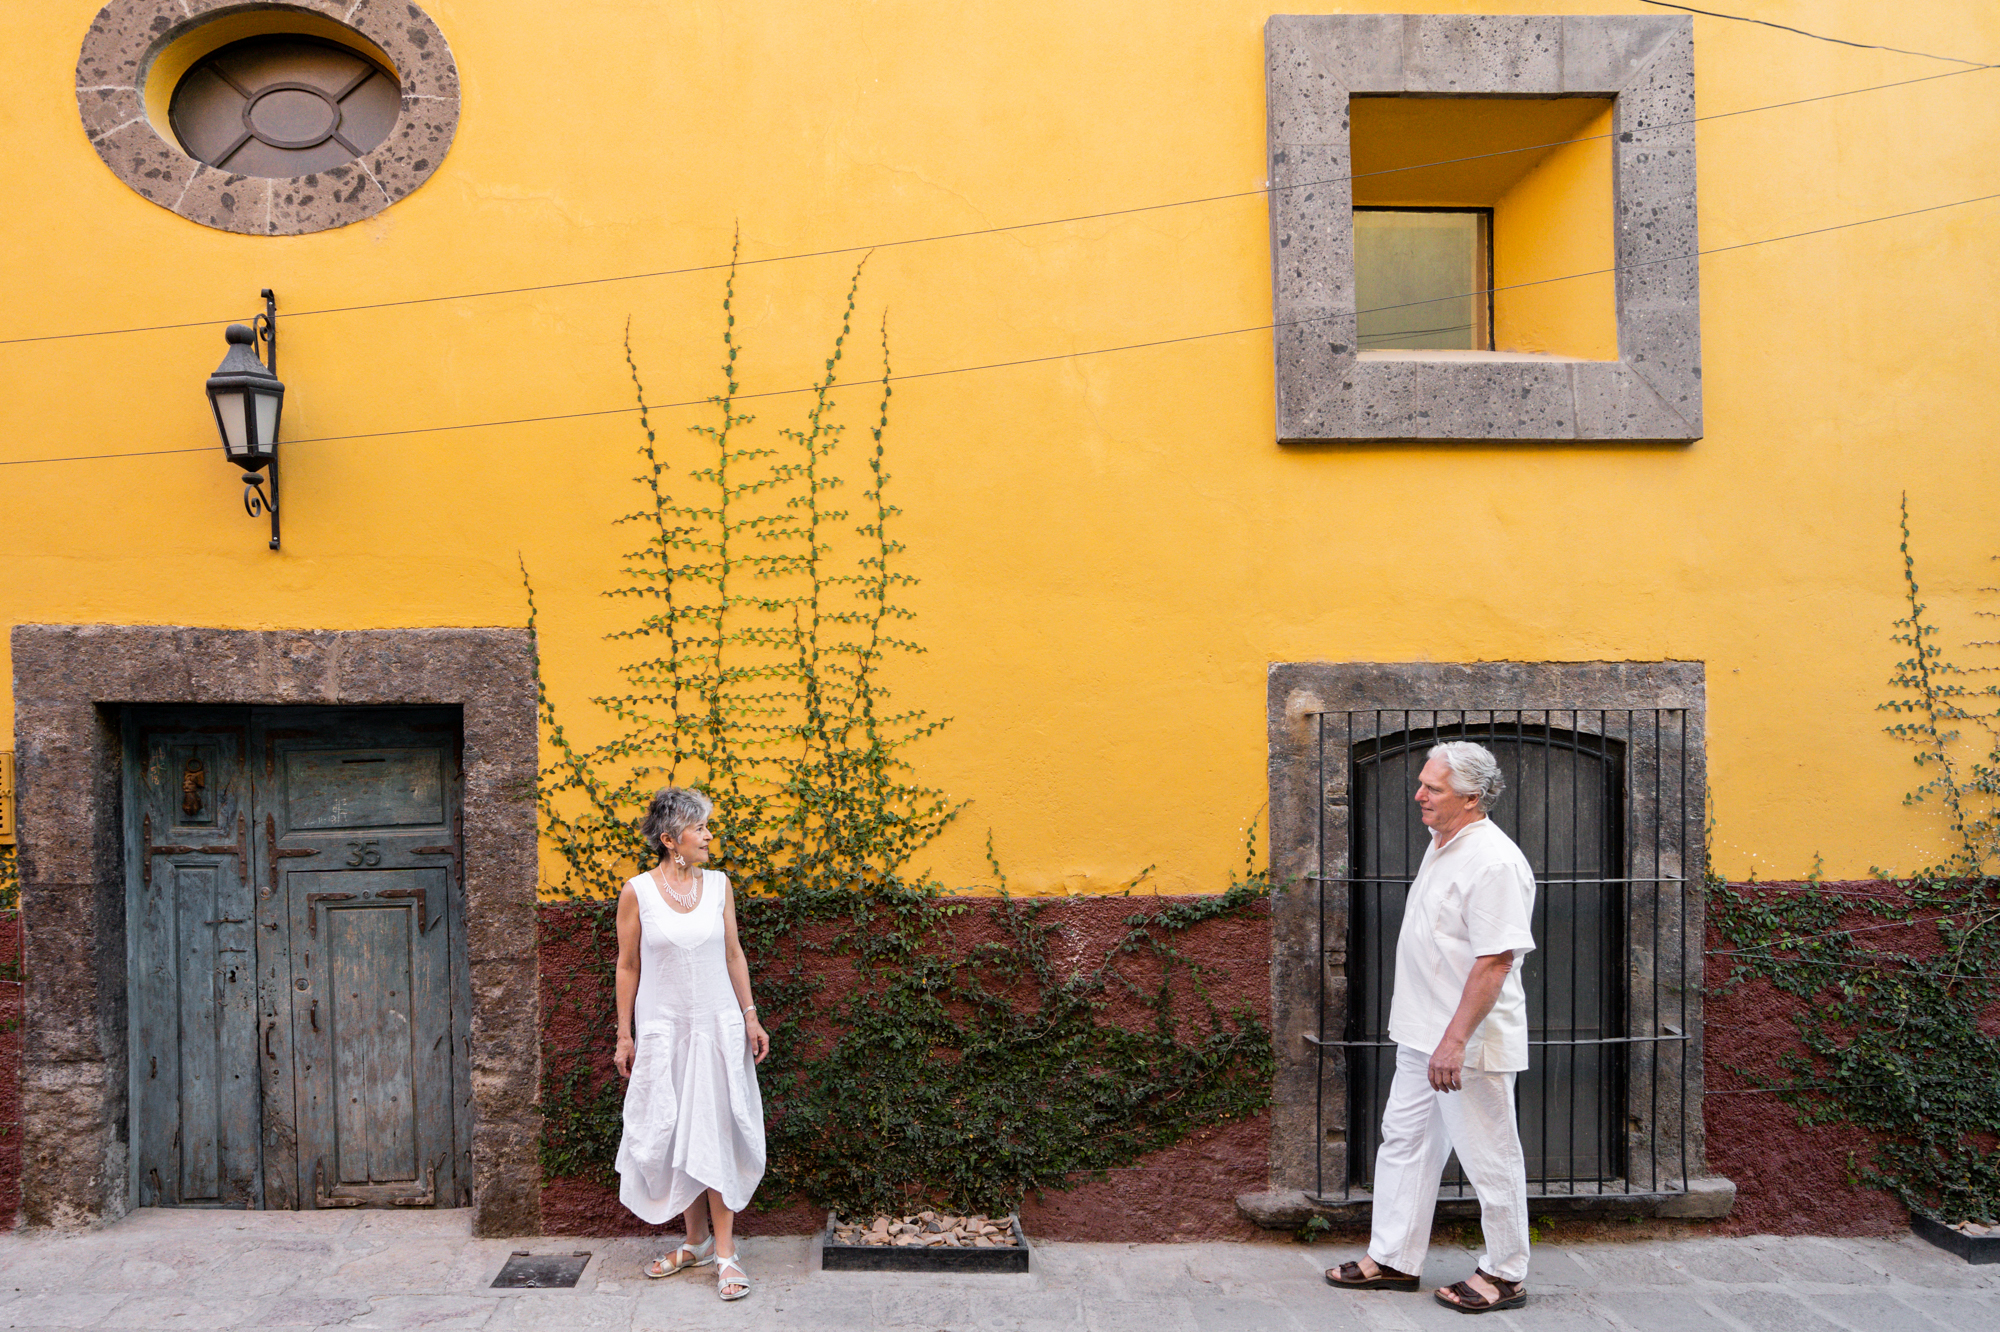 Photoshoot session in San Miguel de Allende with Suzanne and Leo-56.jpg